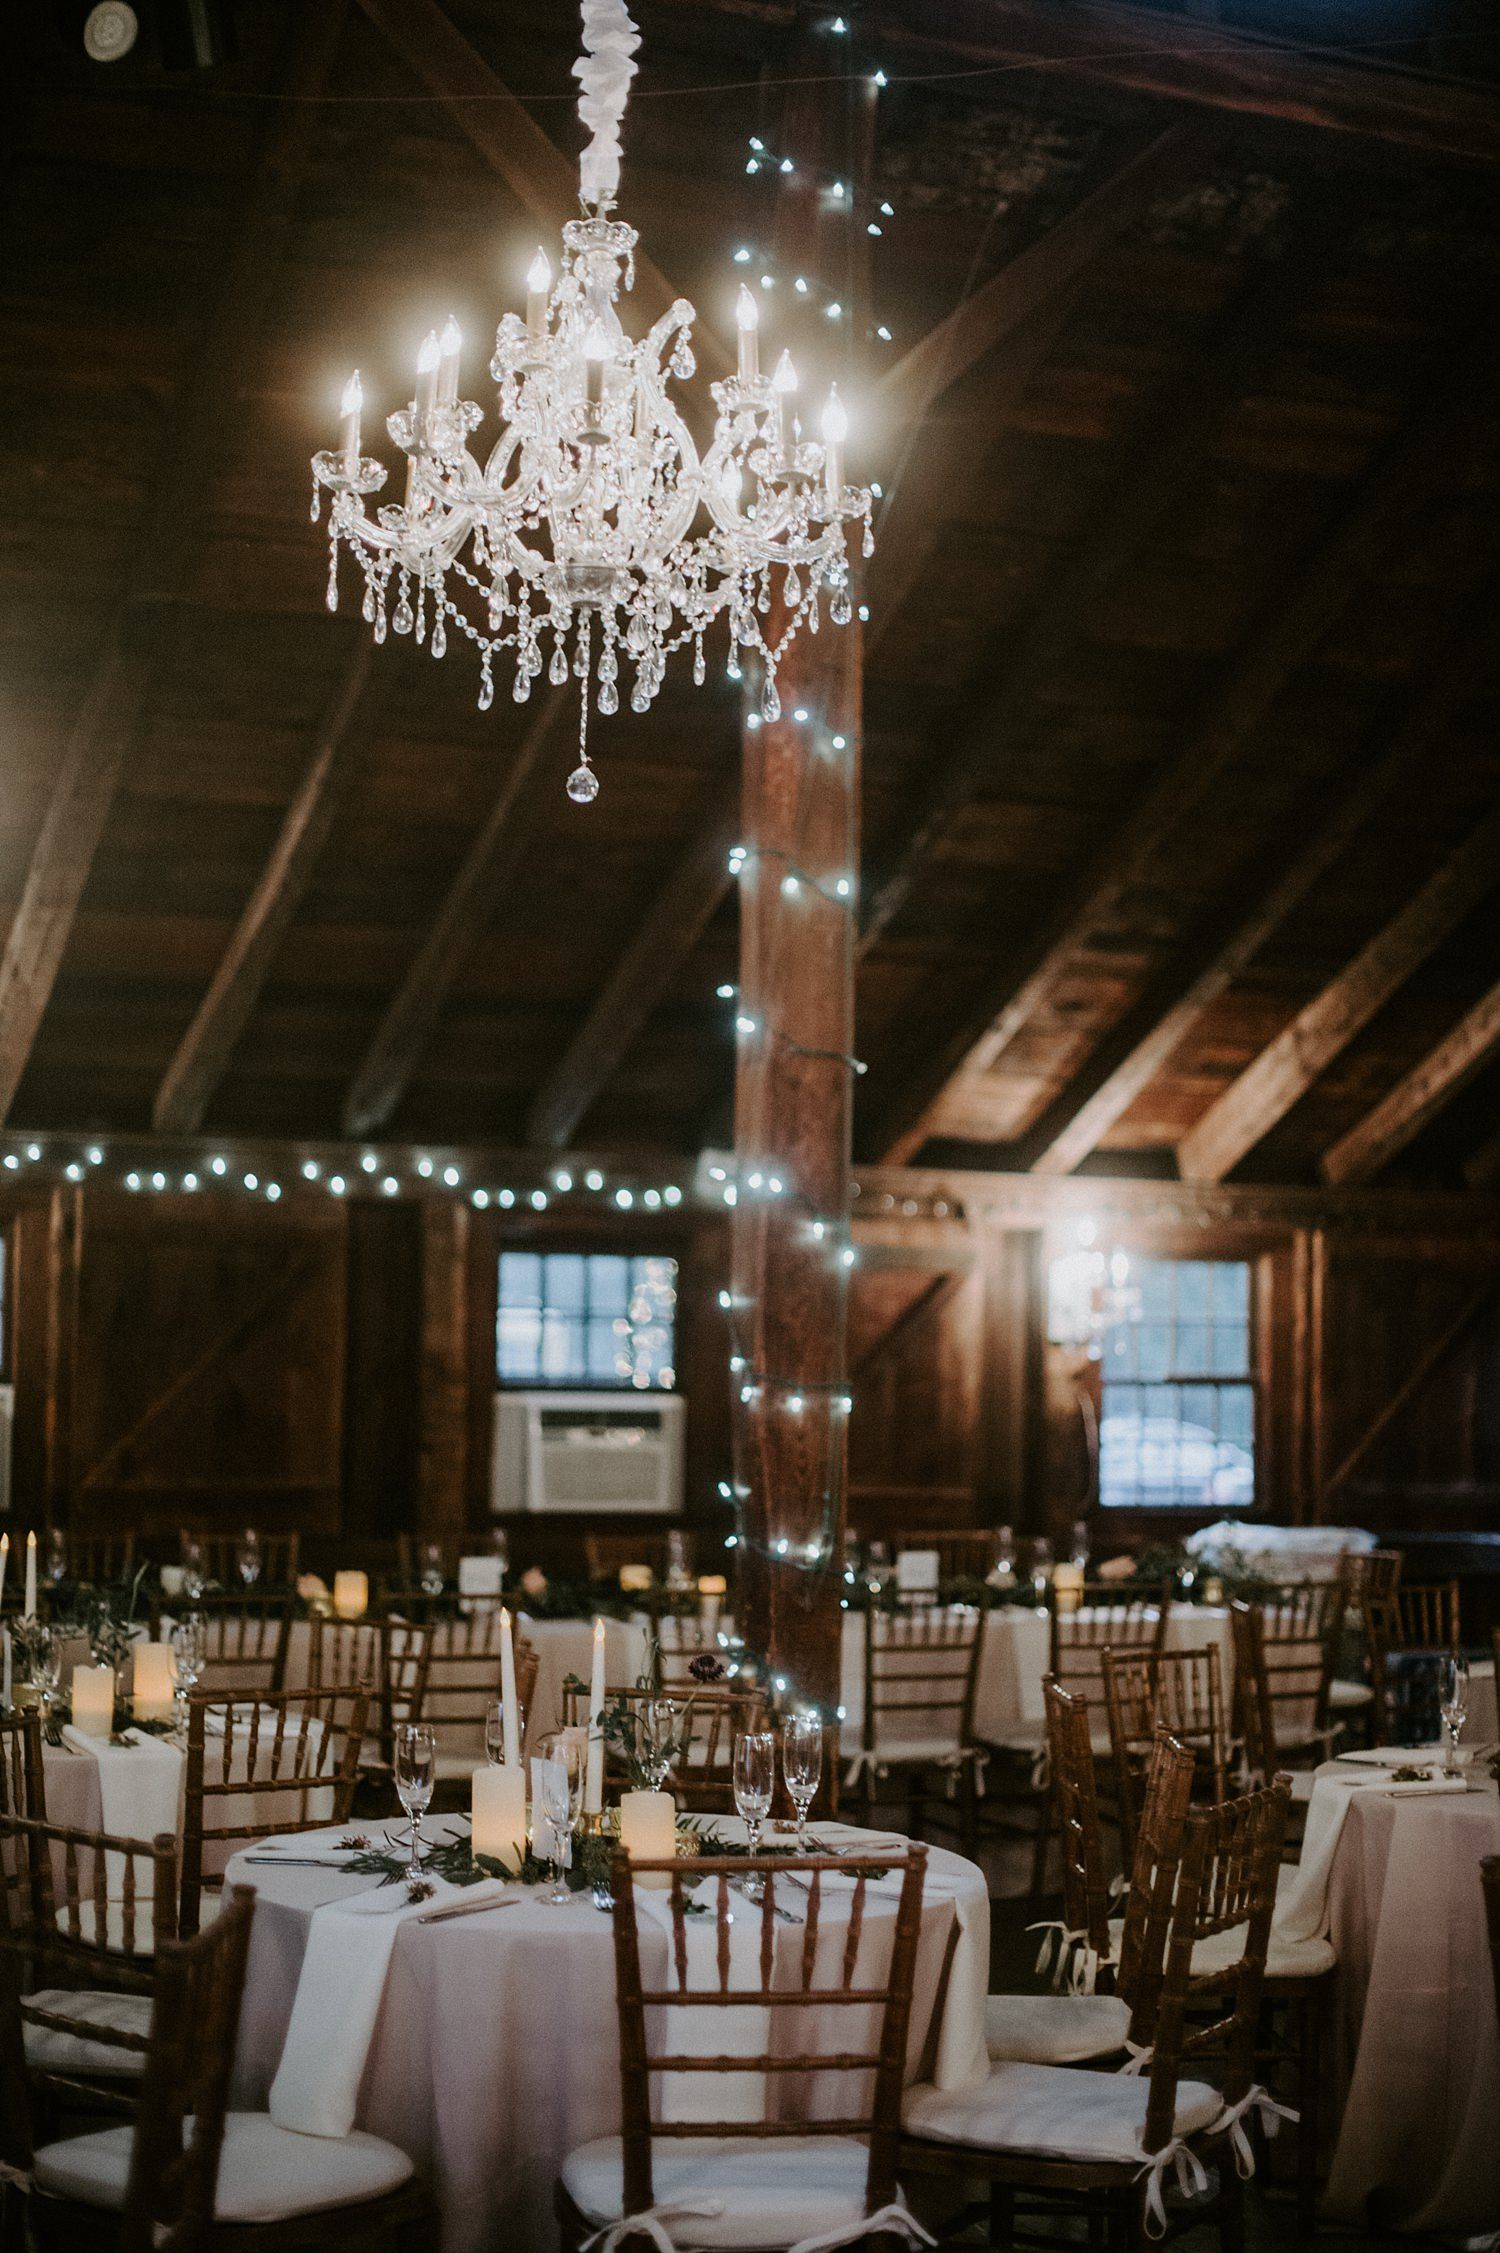 Glamorous And Rustic Wedding With Draping And Chandeliers At The Webb Barn In Wethersfield Ct Barn Wedding Connecticut Wedding Wedding Event Space